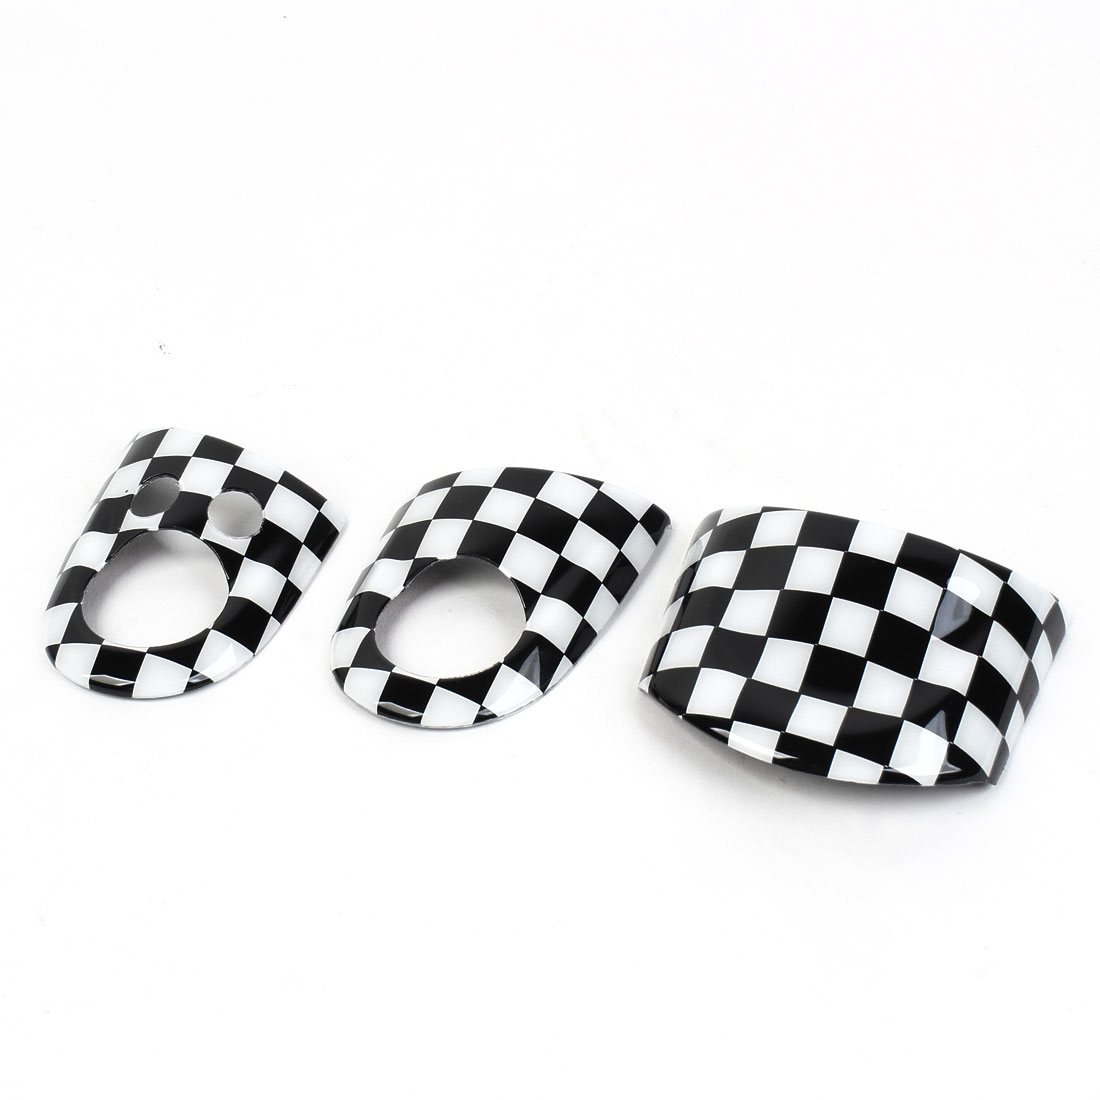 3 Pcs Black White Checks Pattern Steering Wheel Cover Sticker for MINI COOPER